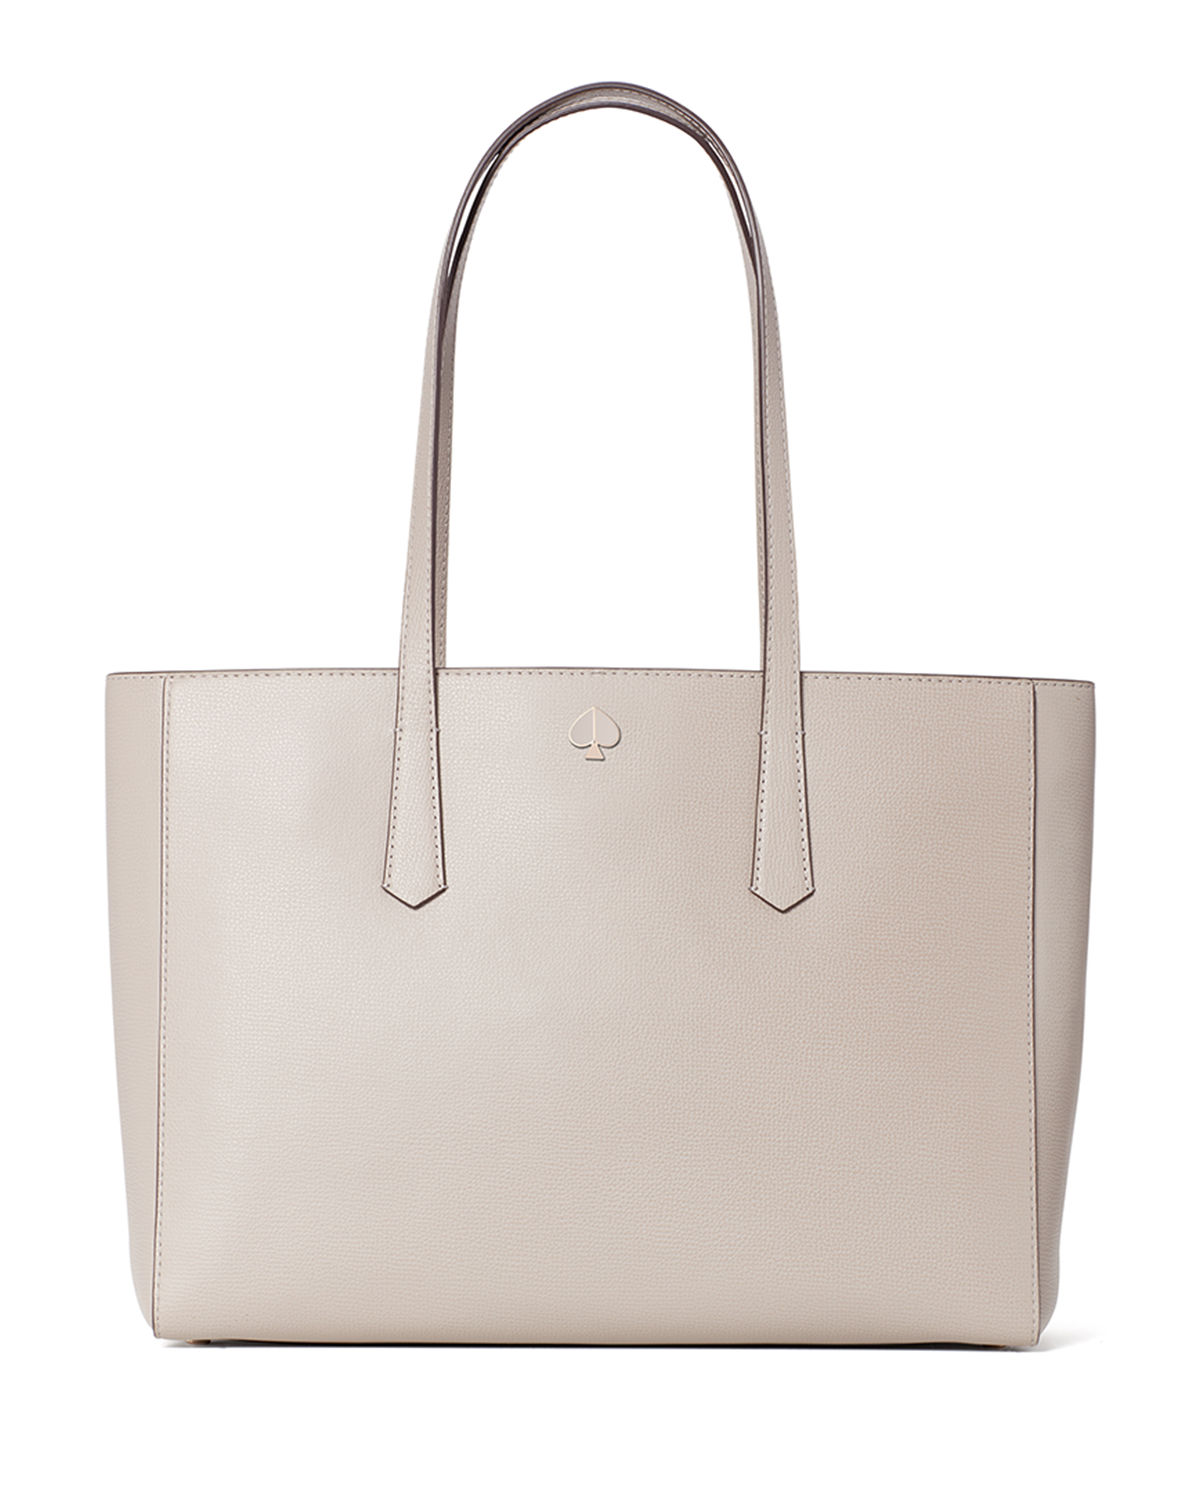 Kate Spade Leathers MOLLY LARGE WORK TOTE BAG